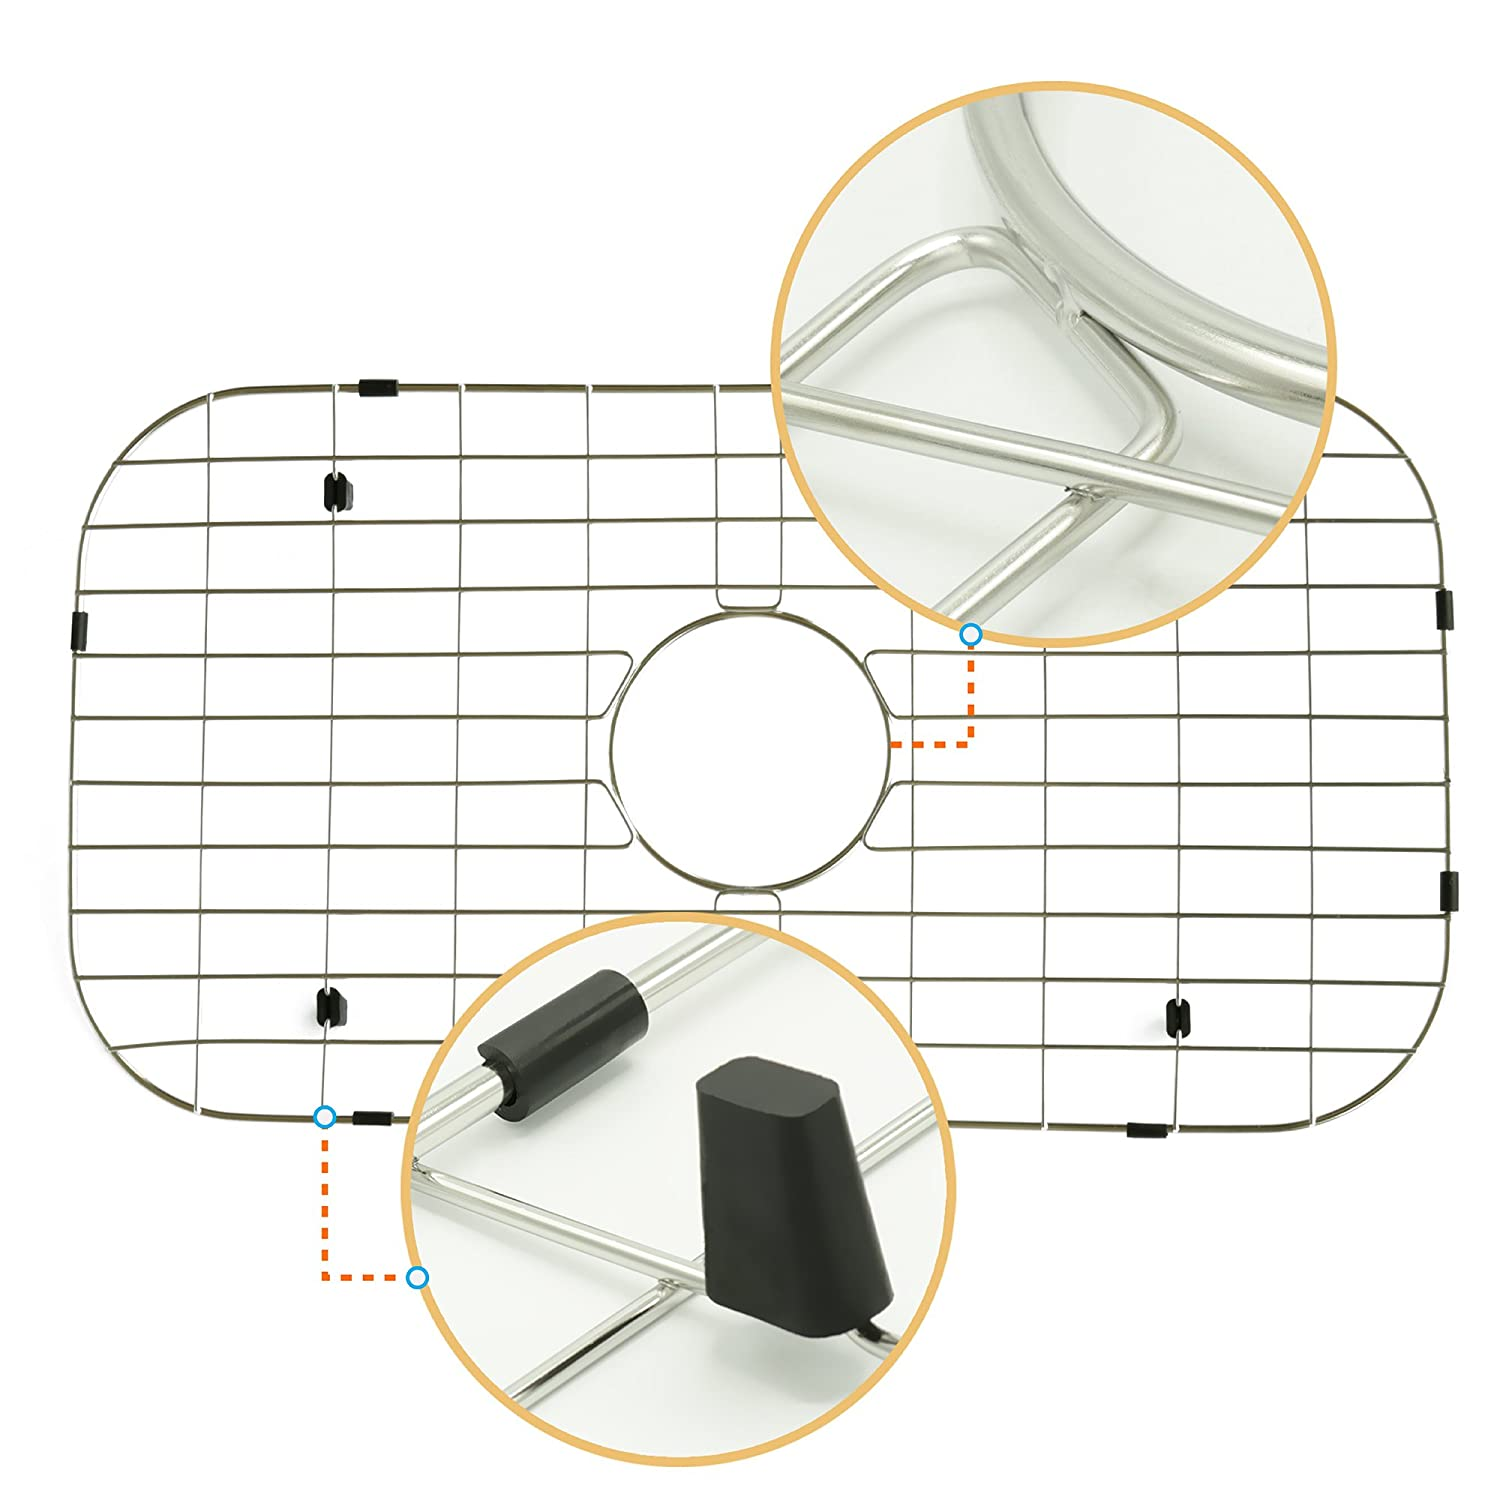 11 in X 15 in Metal Grid for Stainless Steel Kitchen Sinks Best for Protecting Your Sink NWC1511 NWC Sink Protector